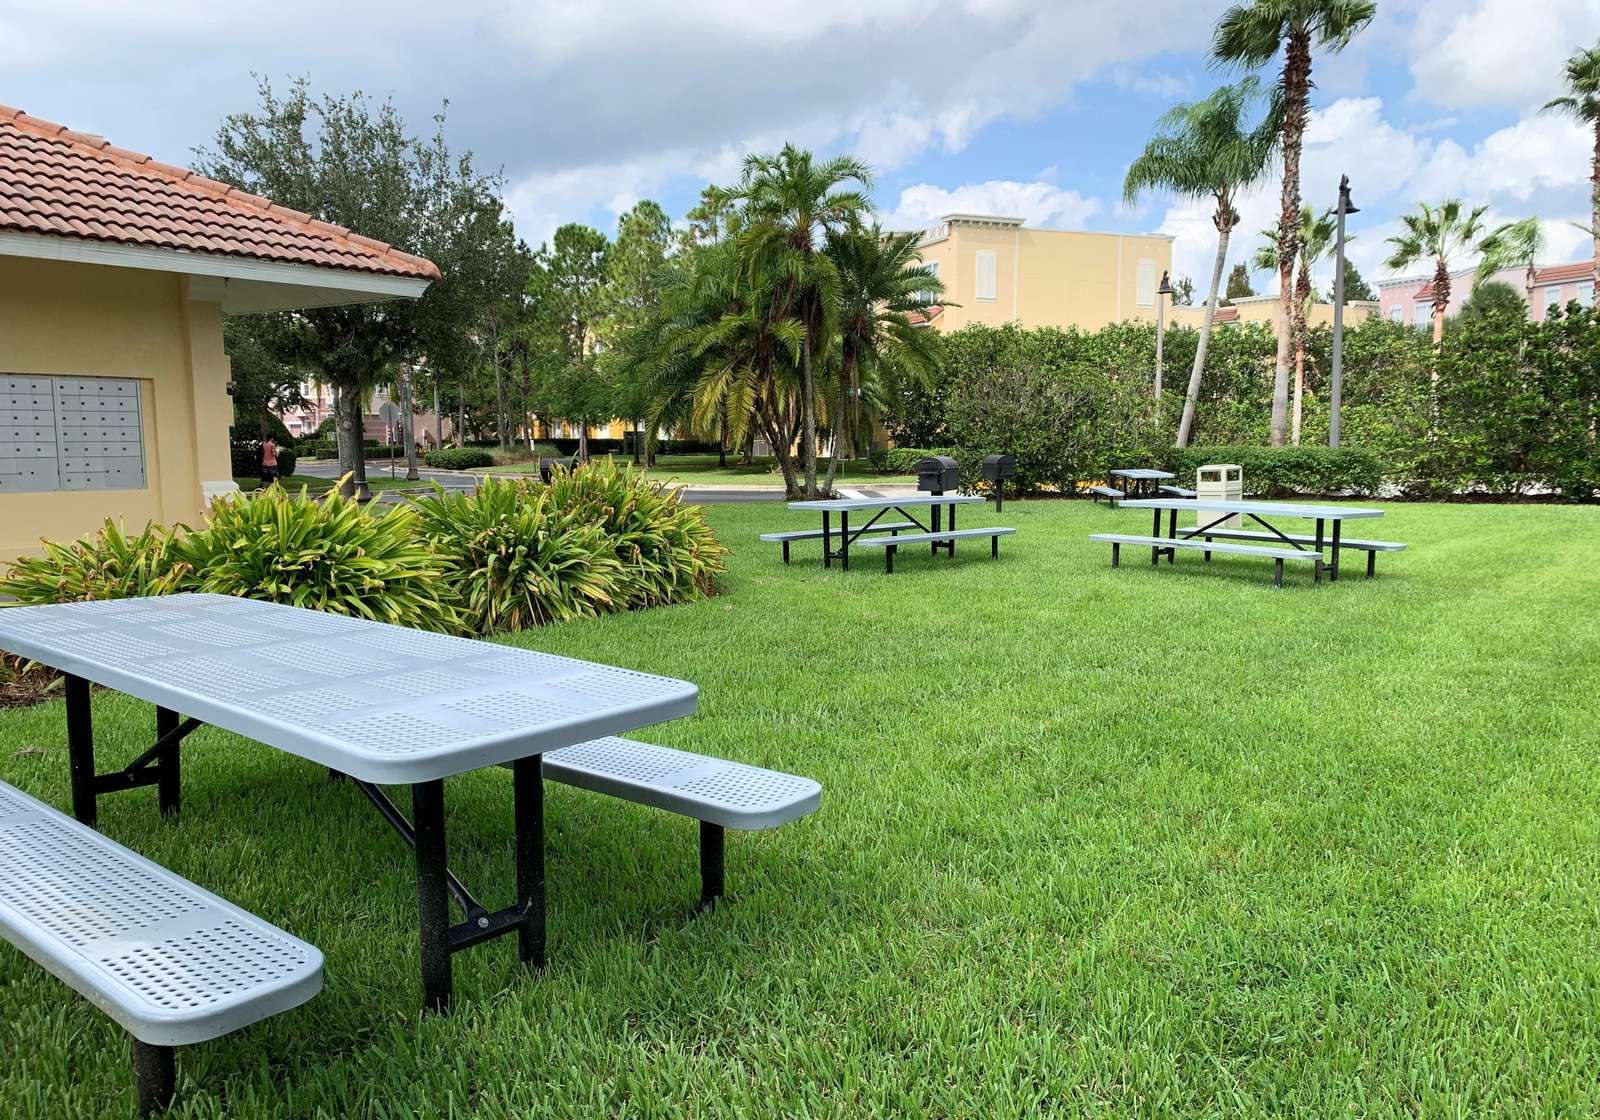 Vista Cay picnic tables and grills